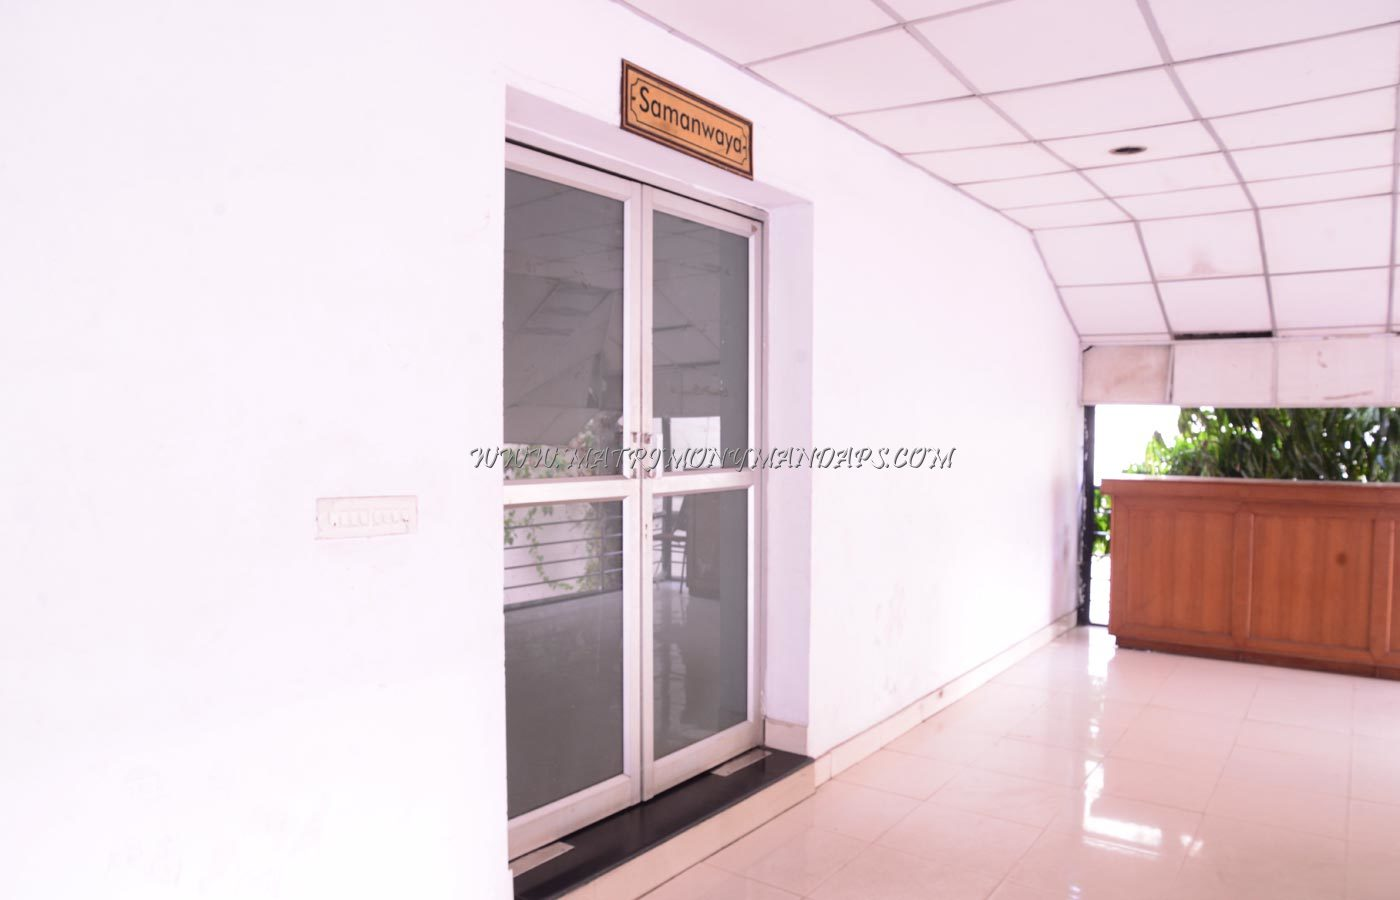 Find the availability of the Chaithram Samanwaya (A/C) in Thampanoor, Trivandrum and avail special offers